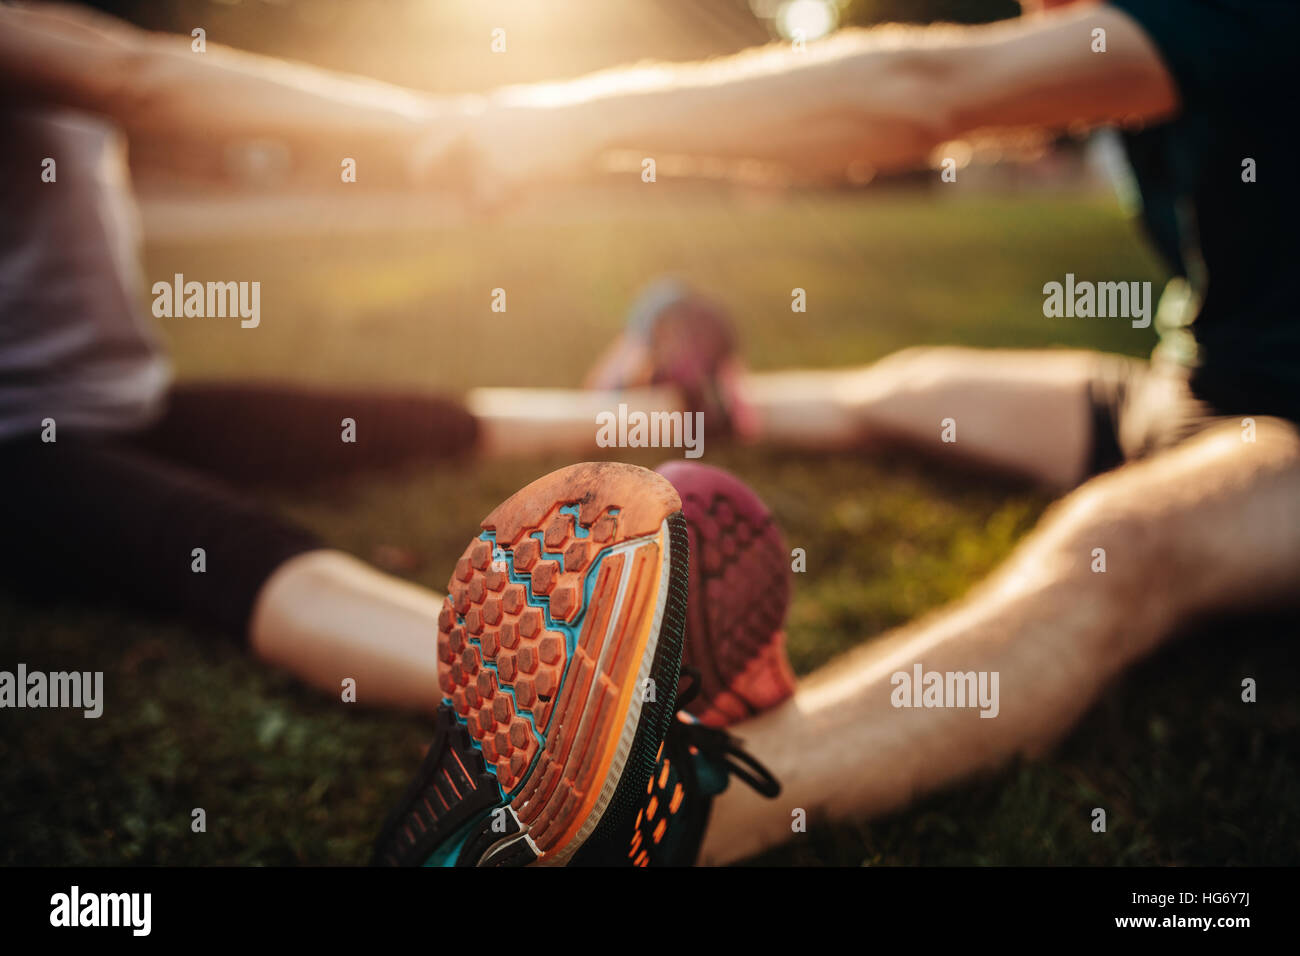 Feet of young man and woman exercising together in the park. Focus on shoes of couple working out together. - Stock Image